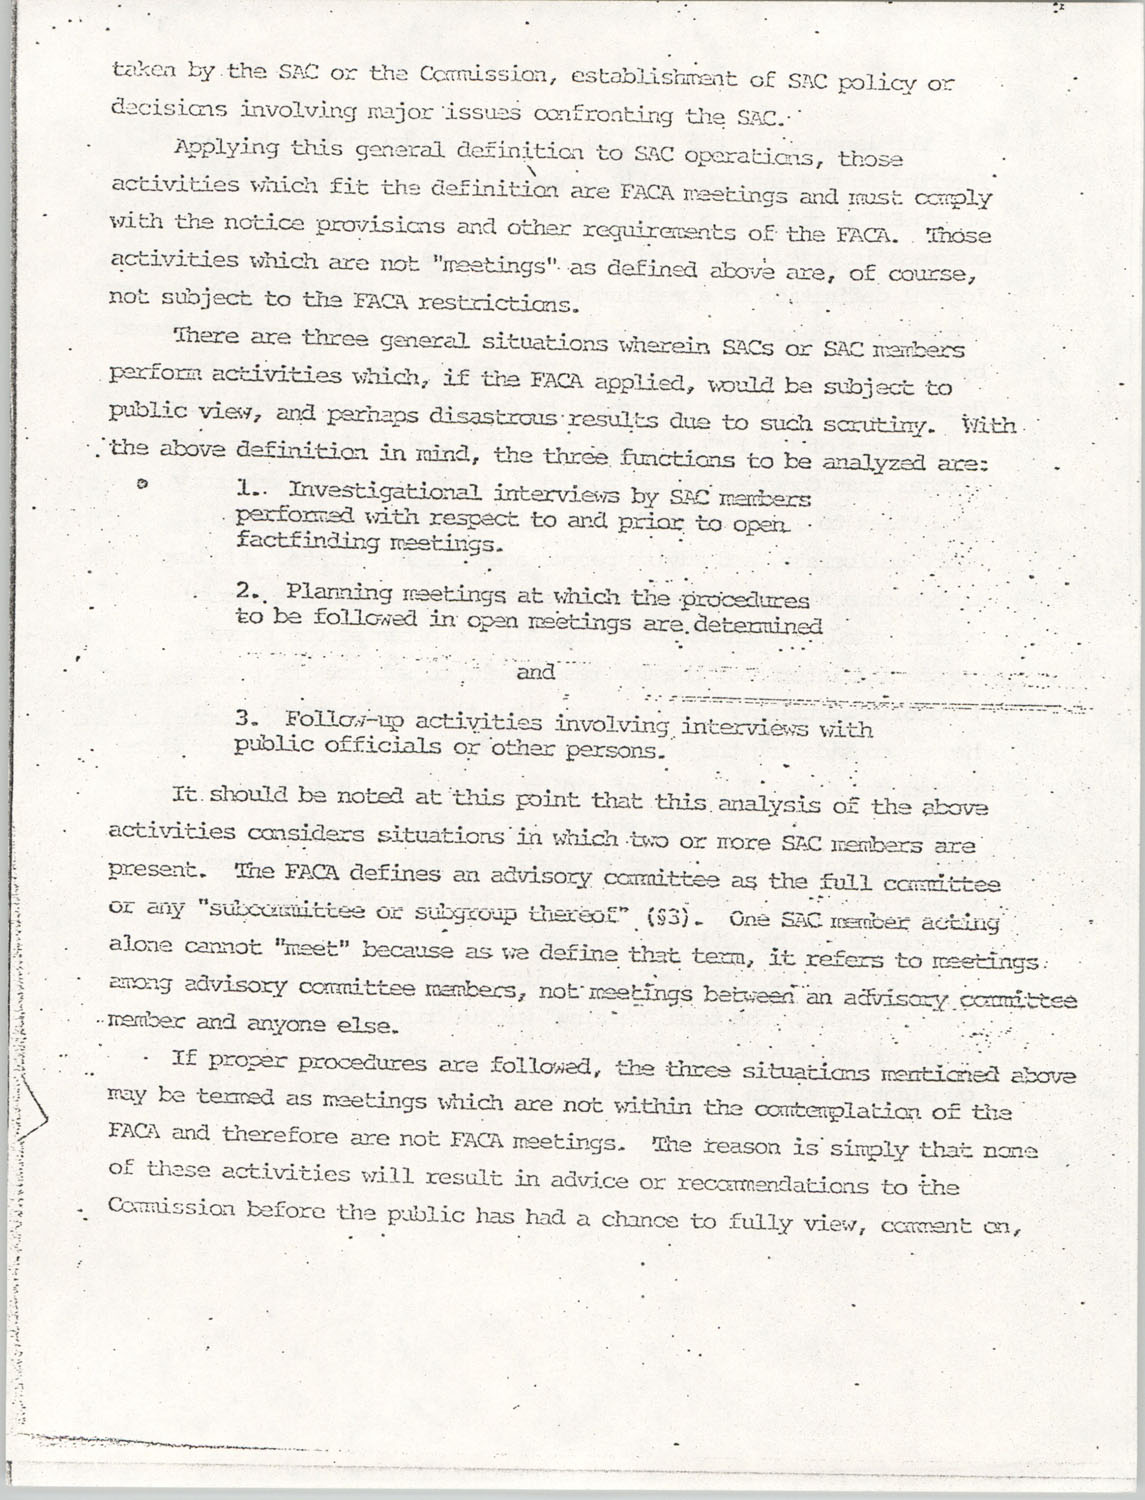 Memorandum from Lawrence B. Glick to Isaiah T. Creswell, August 7, 1975, Page 4